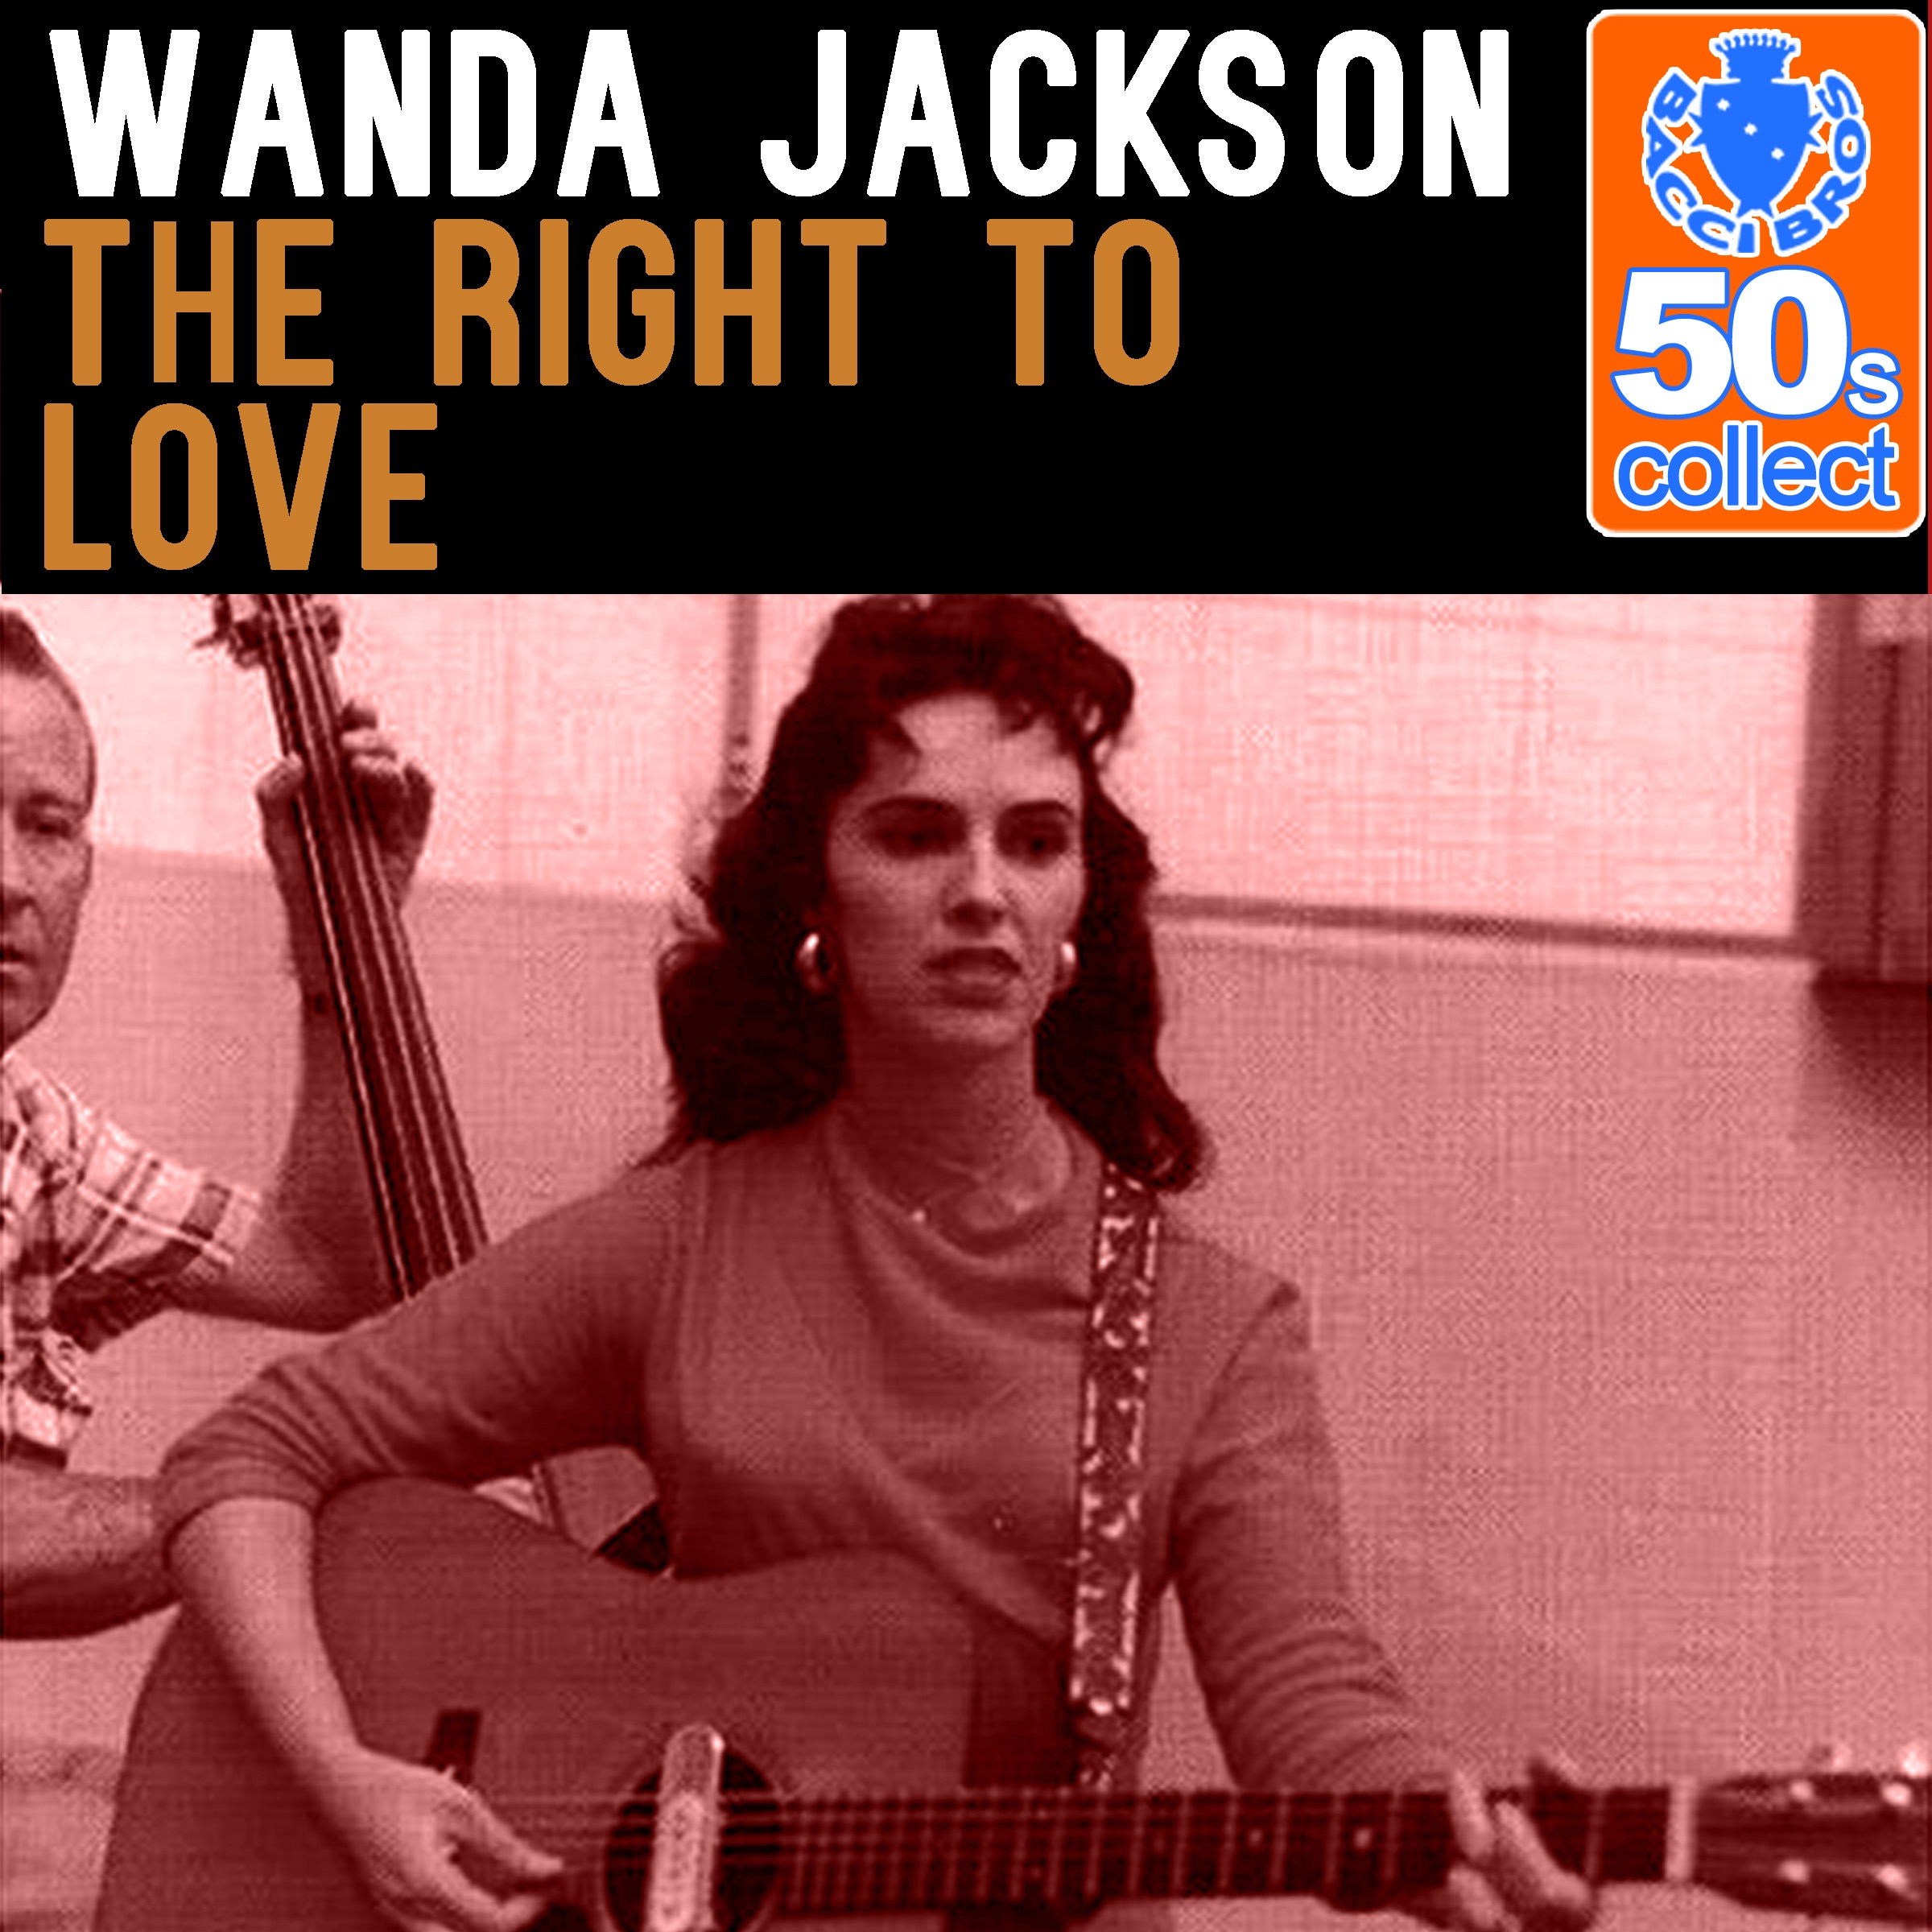 The Right to Love (Remastered) - Single